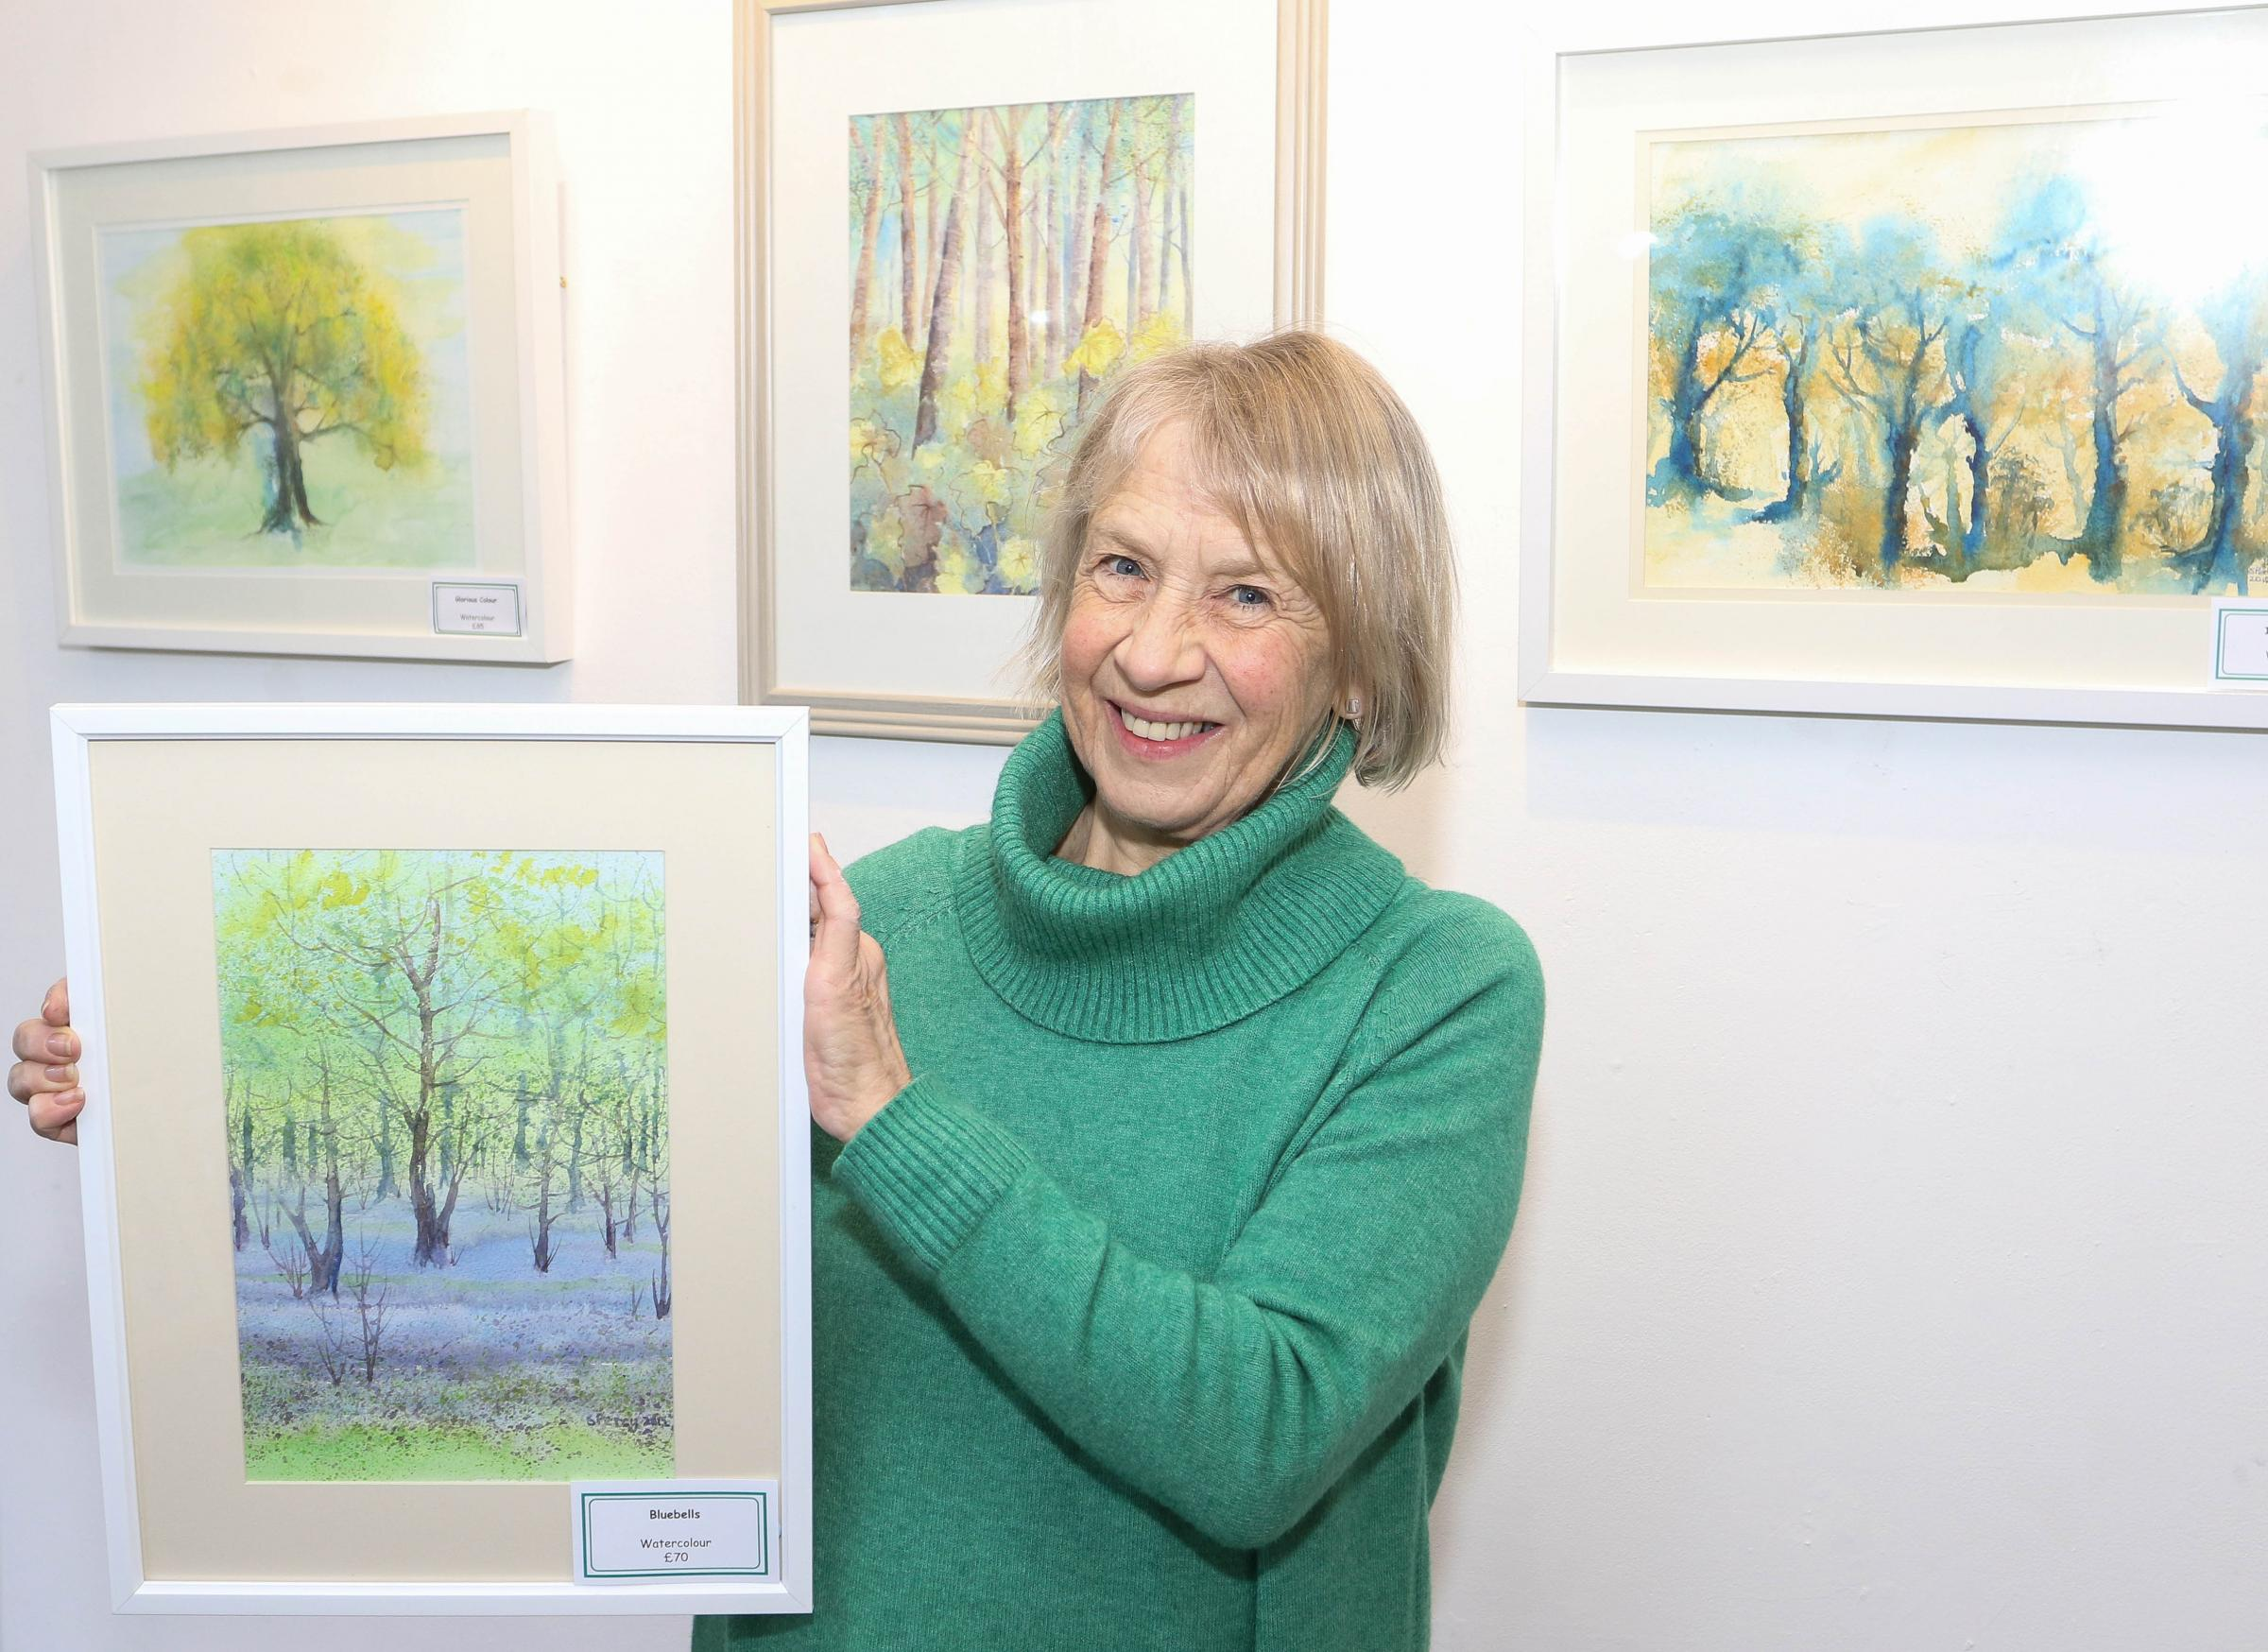 "PB054-2018-4.""Welcome to the Woodland Walk"" an exhibition of artwork by local artist Sue Percy from Bishop's Castle..The Exhibition is on now until 28th February 2018 at SpArC, Bishop's Castle.picture by Phil Blagg.PB054-2018-4."